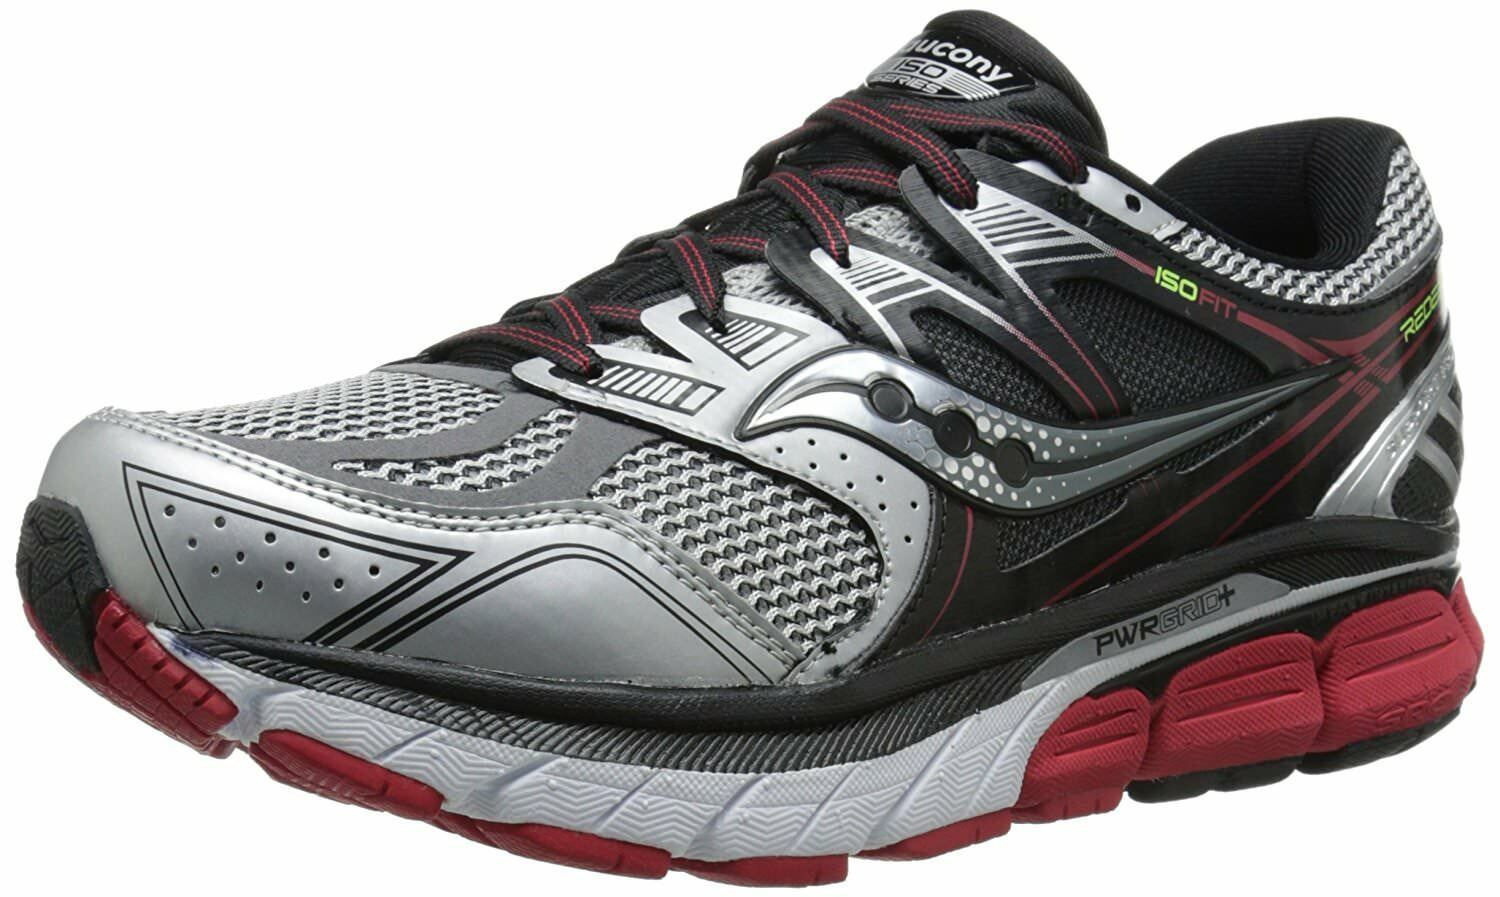 Saucony Men's Redeemer ISO Running Shoe, Silver/Black/Red,11 M US